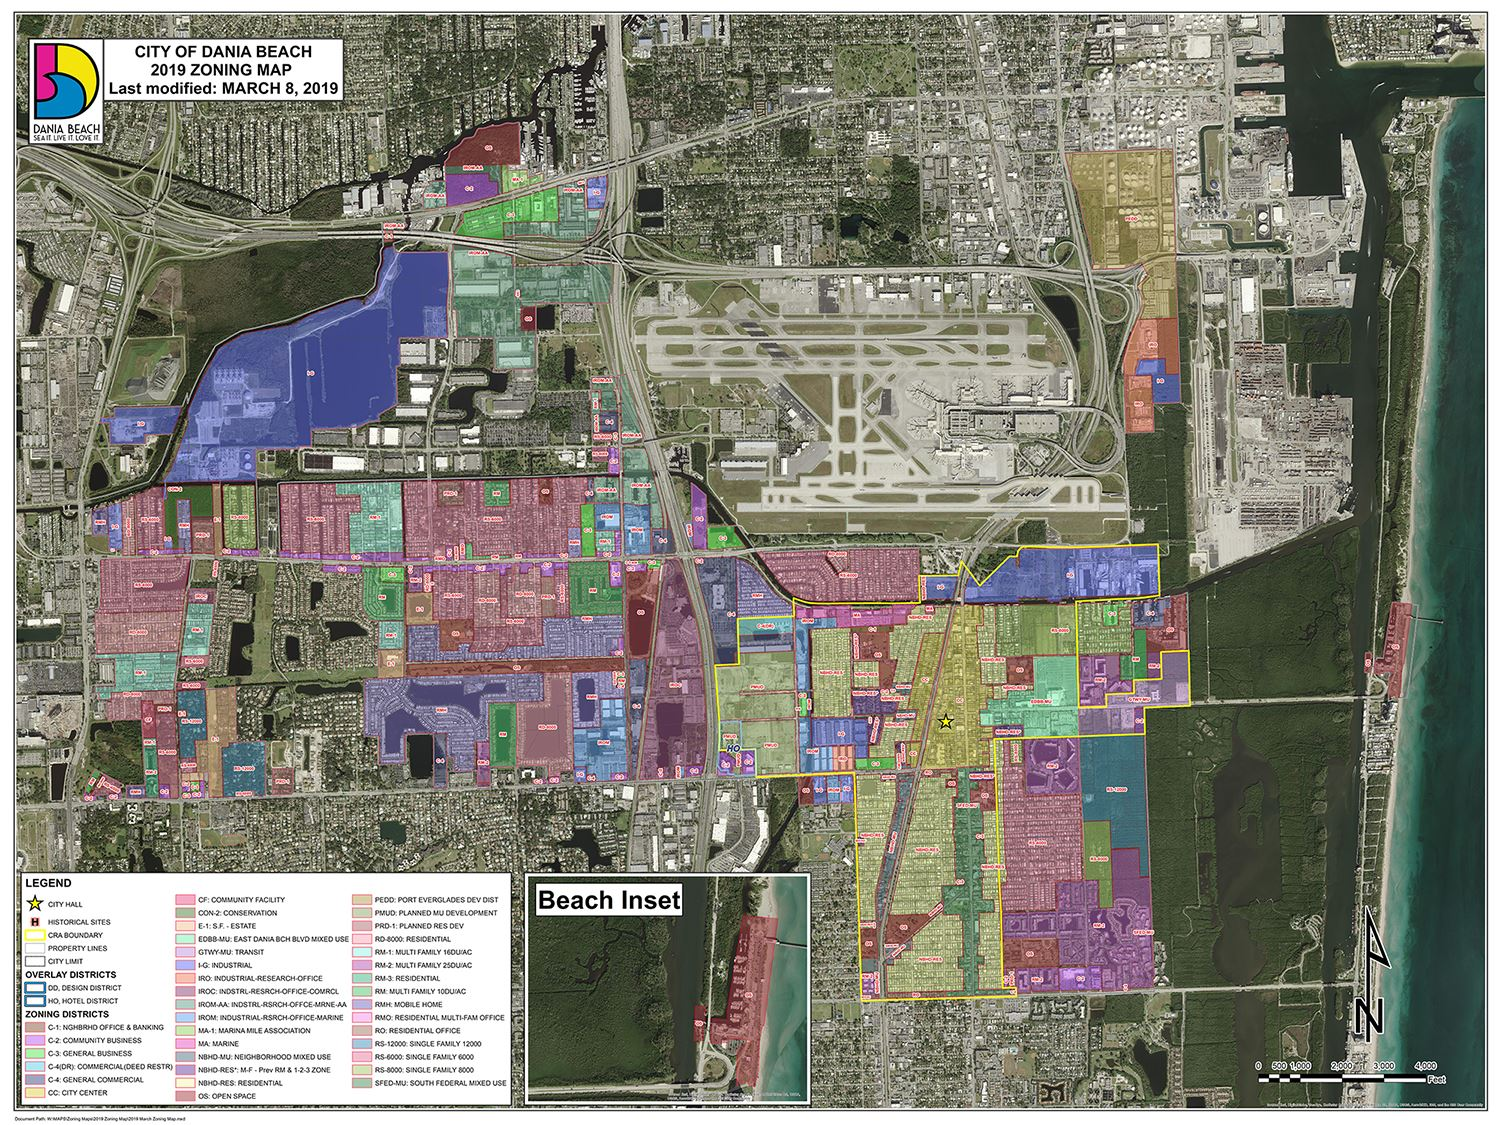 Dania Beach Zoning Map